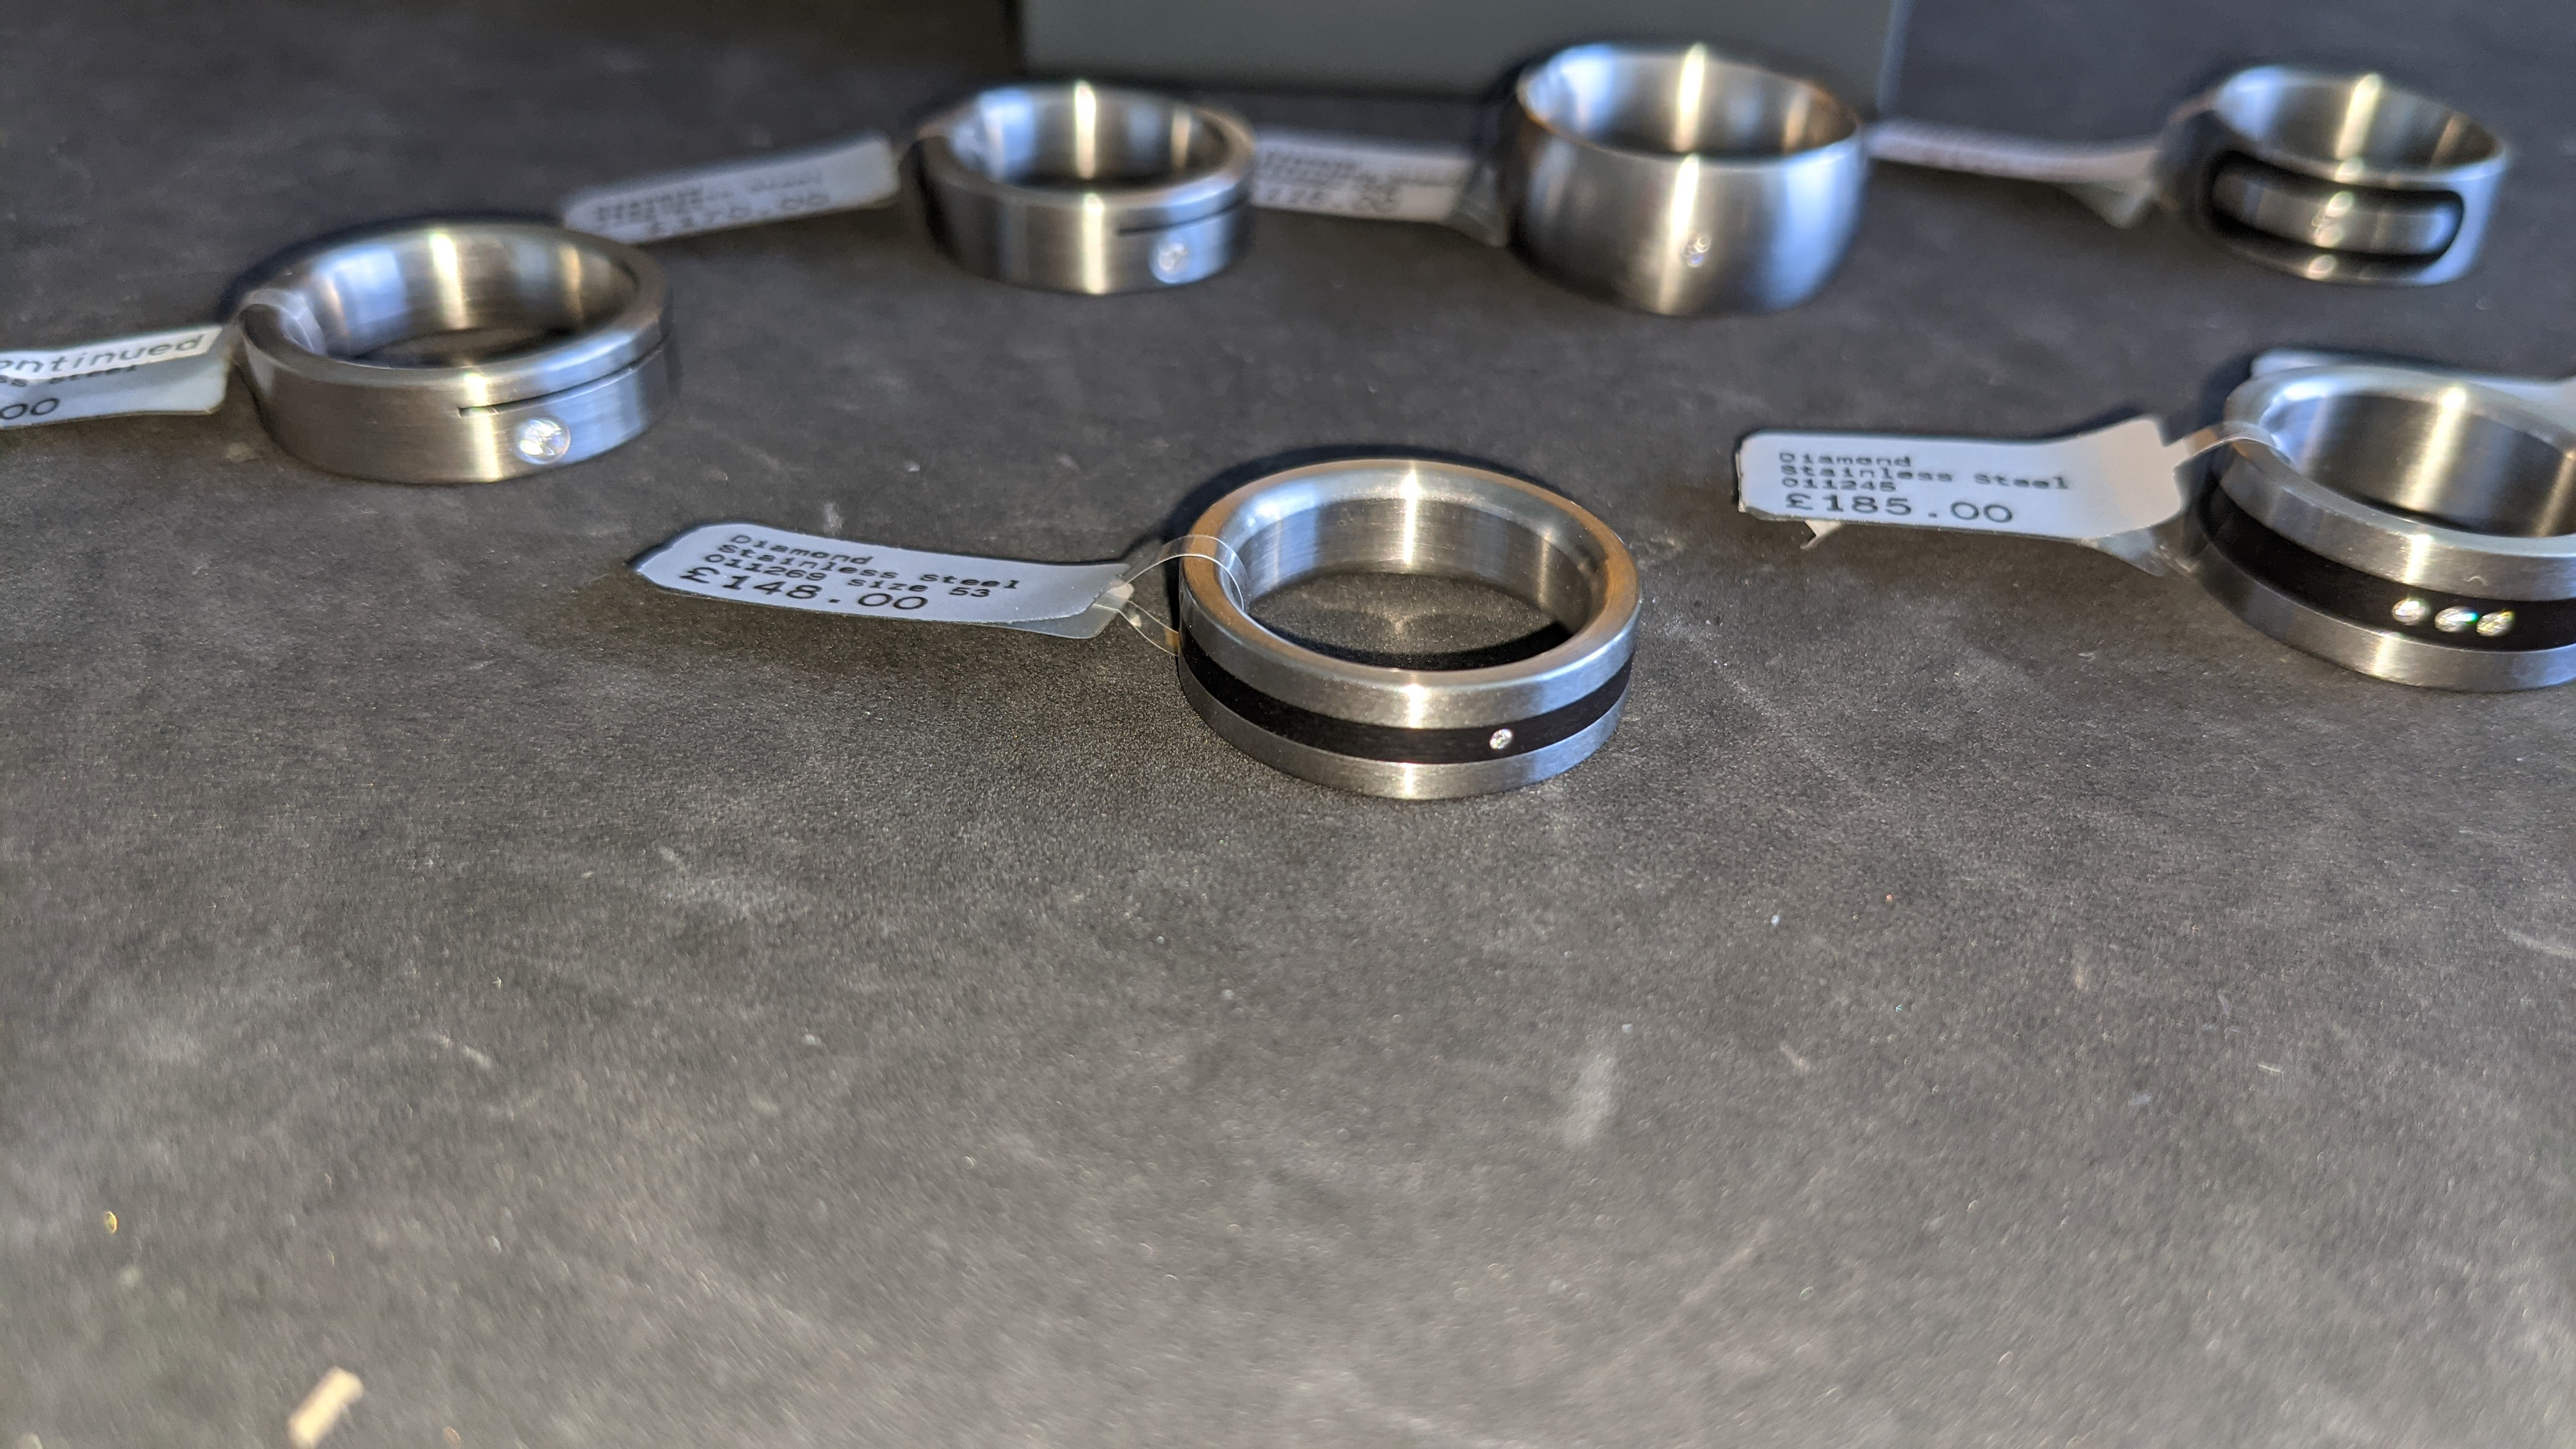 7 off assorted stainless steel & diamond rings. RRPs from £110 - £185. Total RRP £1,089 - Image 5 of 12